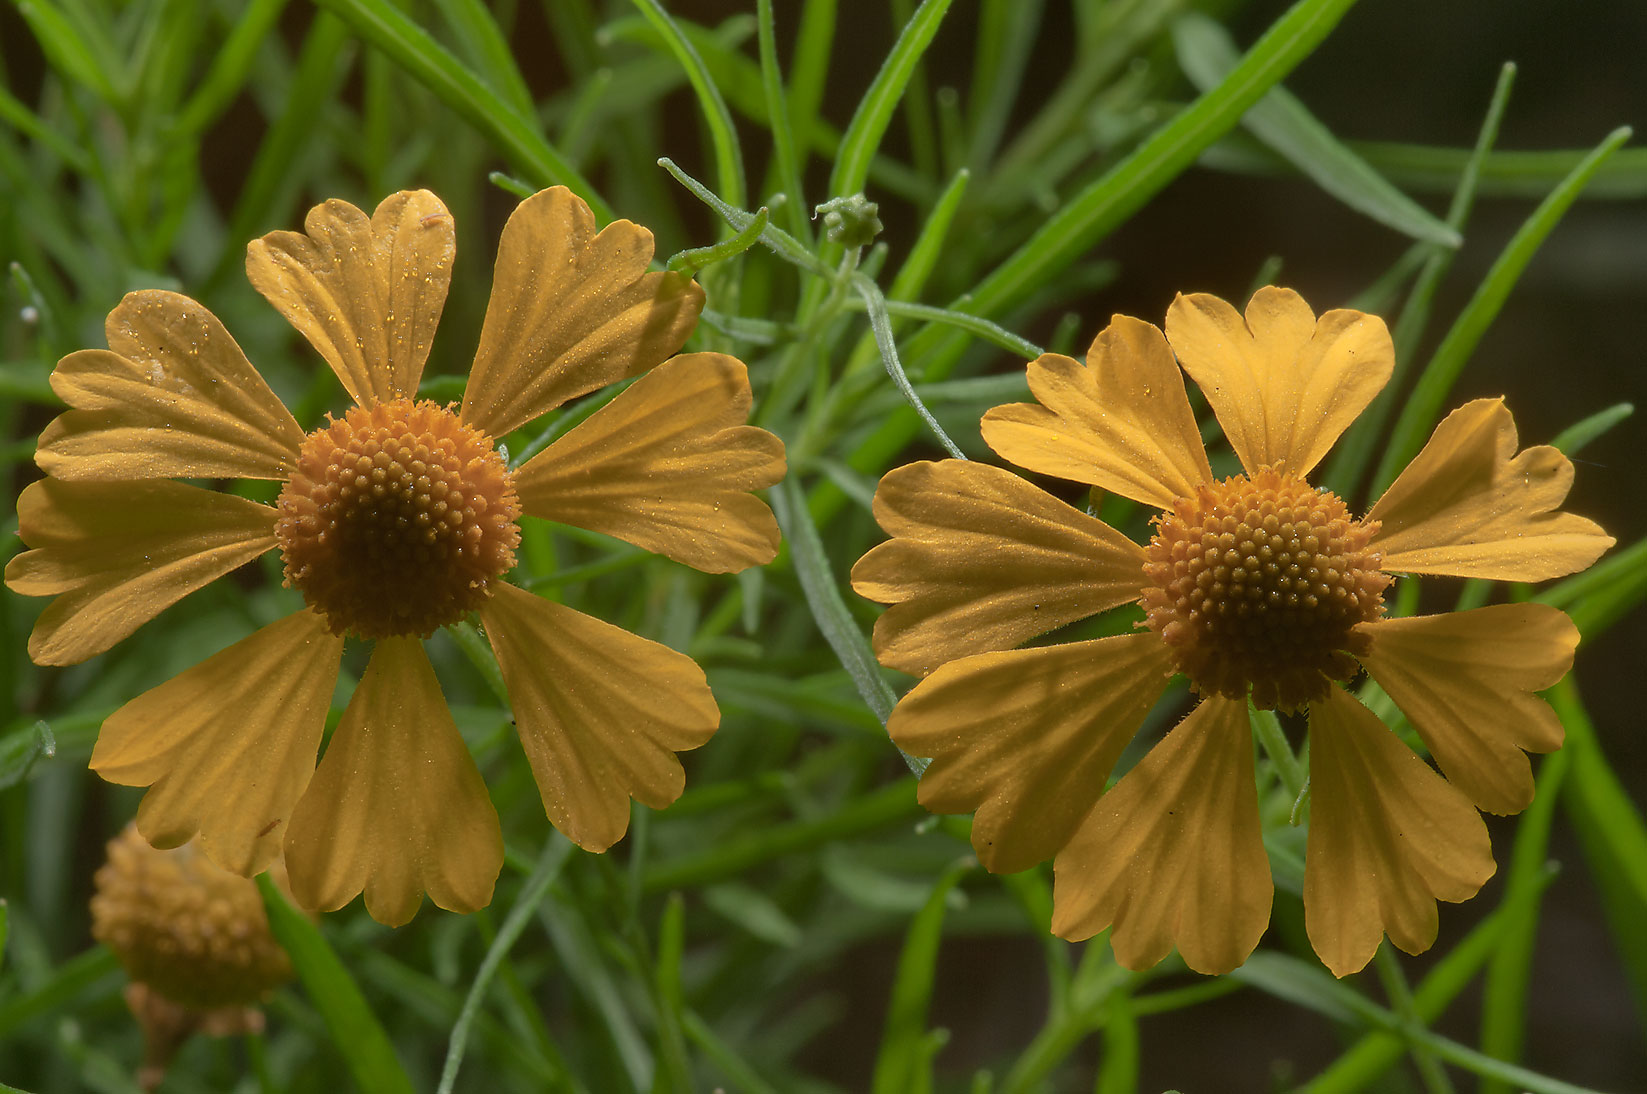 Sneezeweed (Helenium amarum) in Lick Creek Park. College Station, Texas